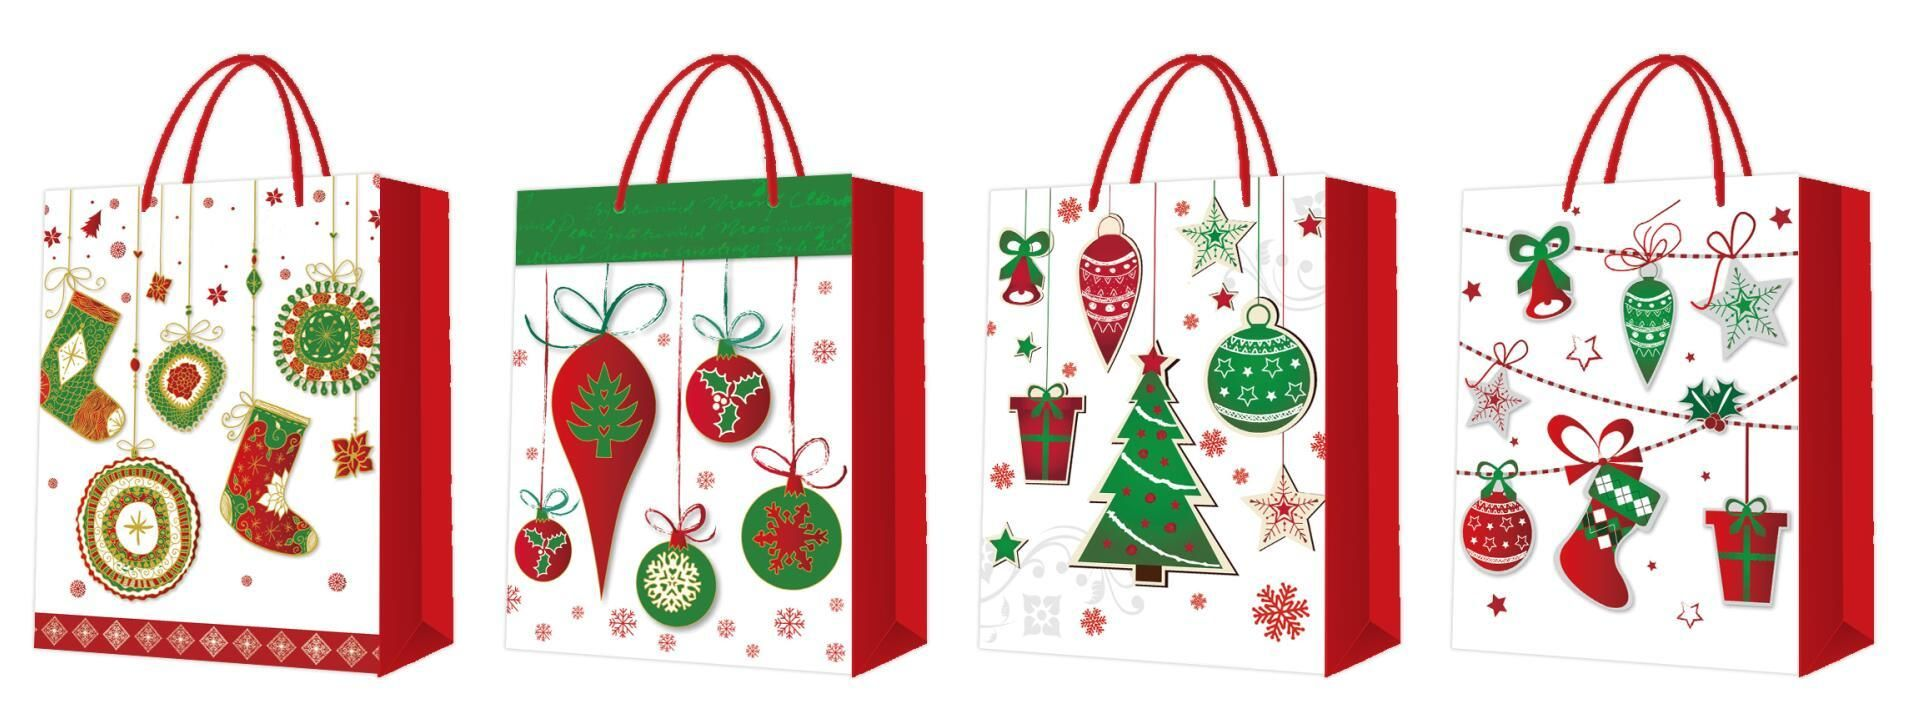 Jingle All The Way Christmasgiftbags Christmasshoppingbags Merrychristmas Bejollly Seasonalgreeting Hap Custom Gift Bags Jingle All The Way Gift Packaging